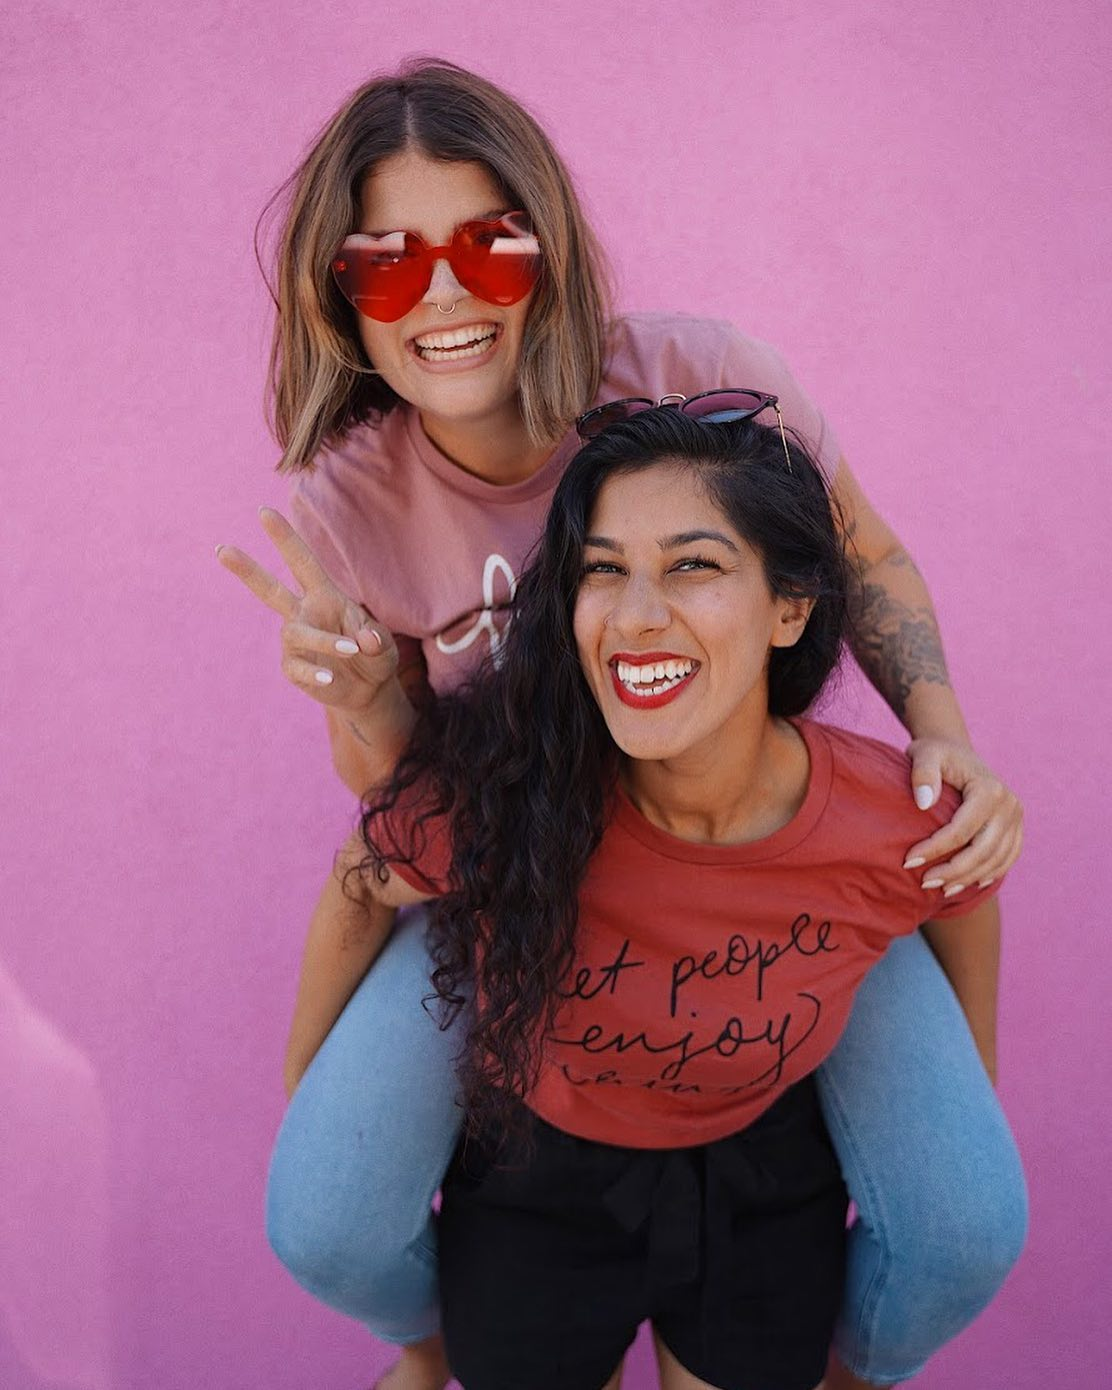 Two women smile in front of a pink wall. One woman in sunglasses is on the back of another woman. Both are wearing Soft Flirt tshirts.